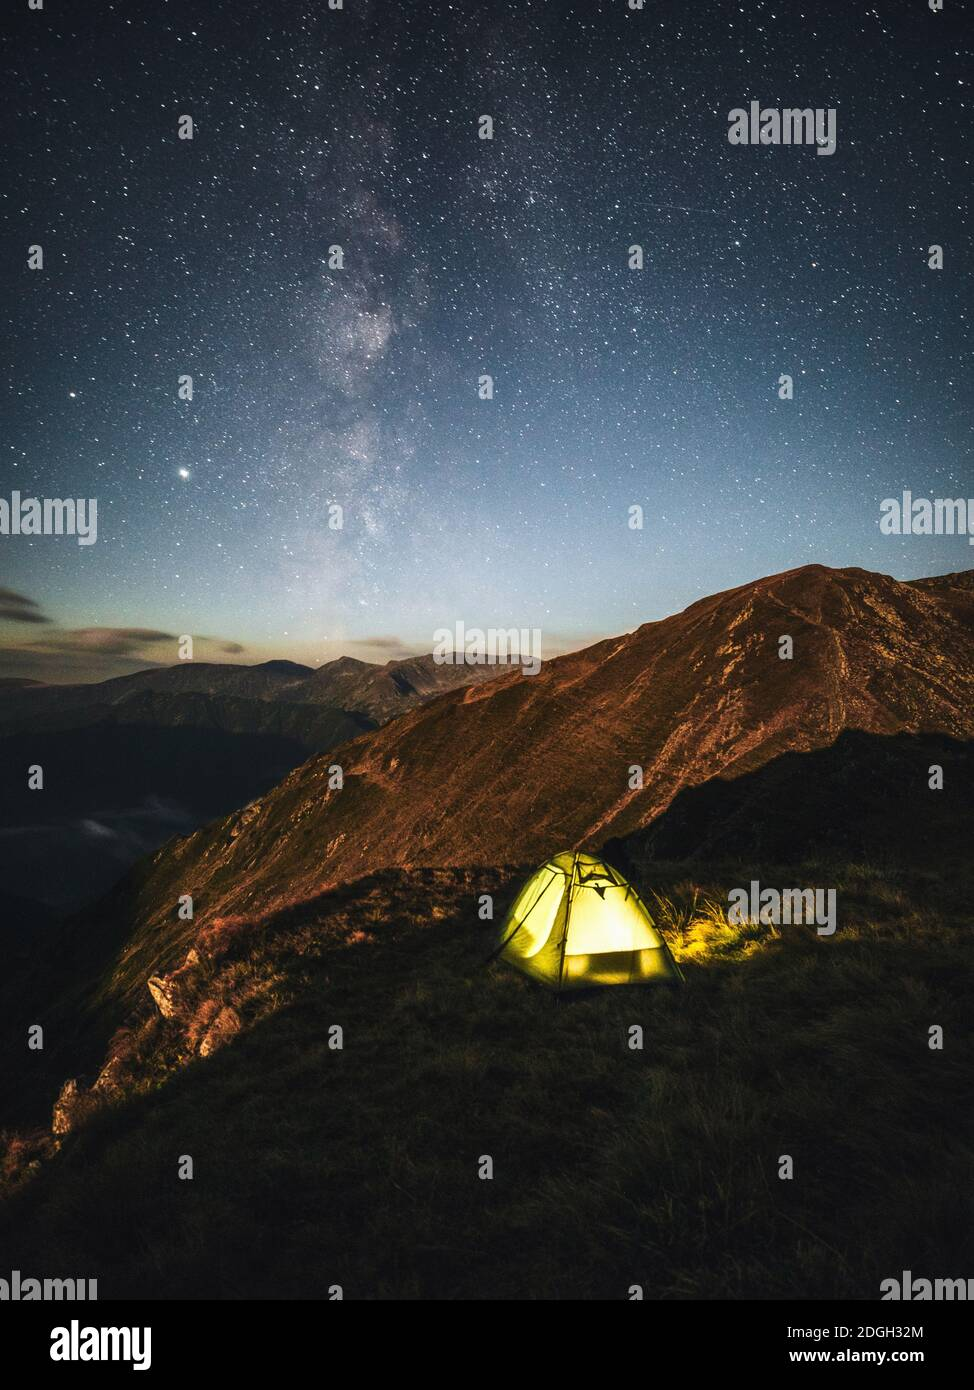 Camping under starry sky and milky way at high altitude on the Carpathian mountains. Illuminated tent in the foreground and majestic mountain peak Stock Photo